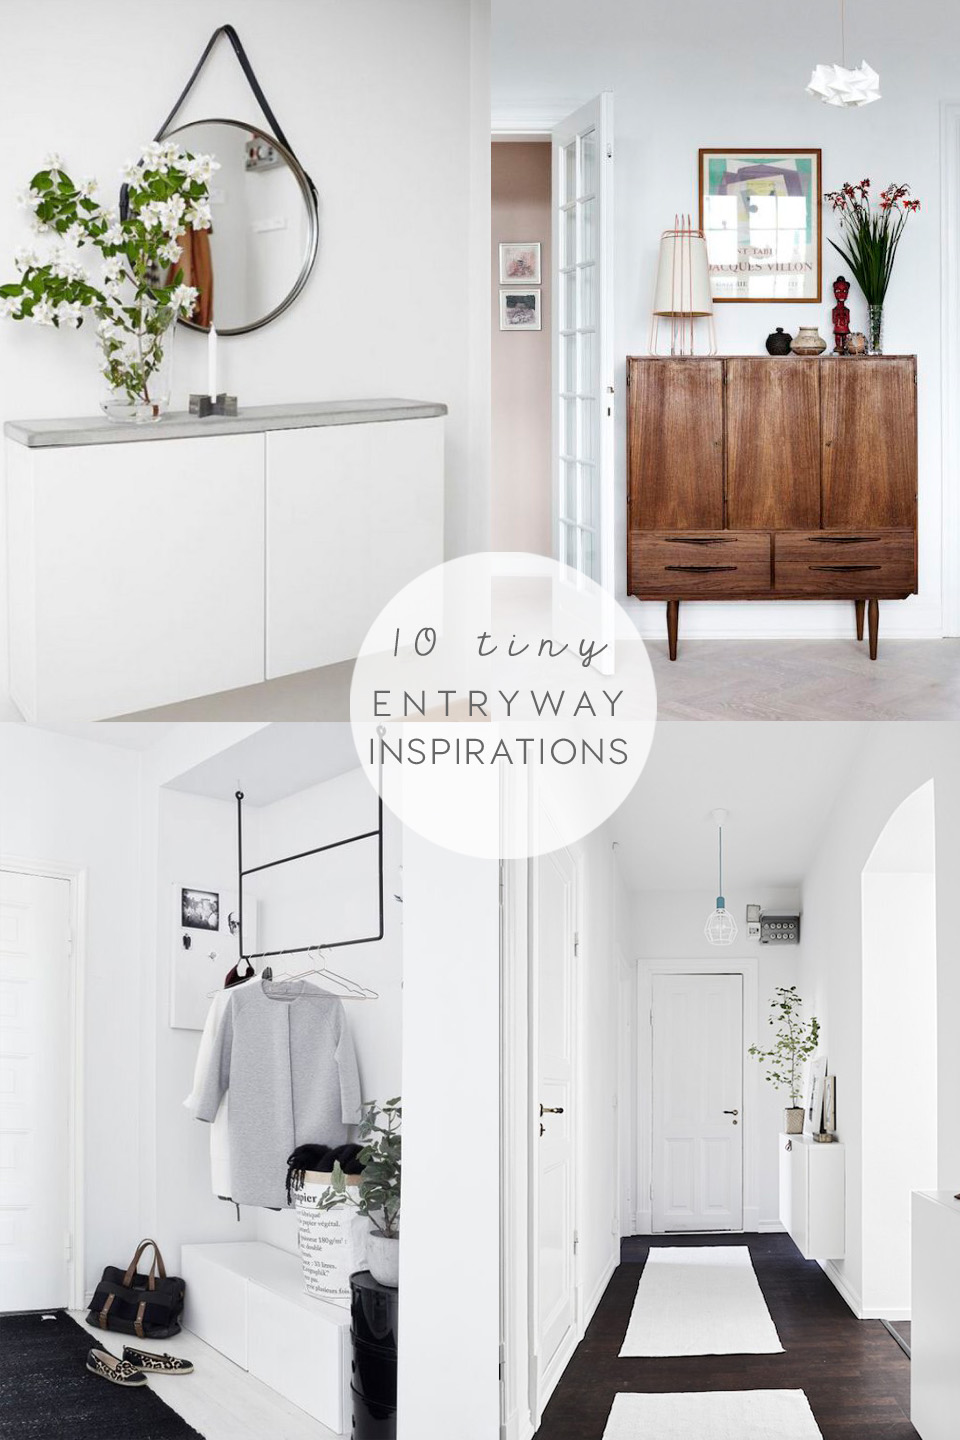 Tiny entryway ideas and inspirations | INTERIOR TIPS